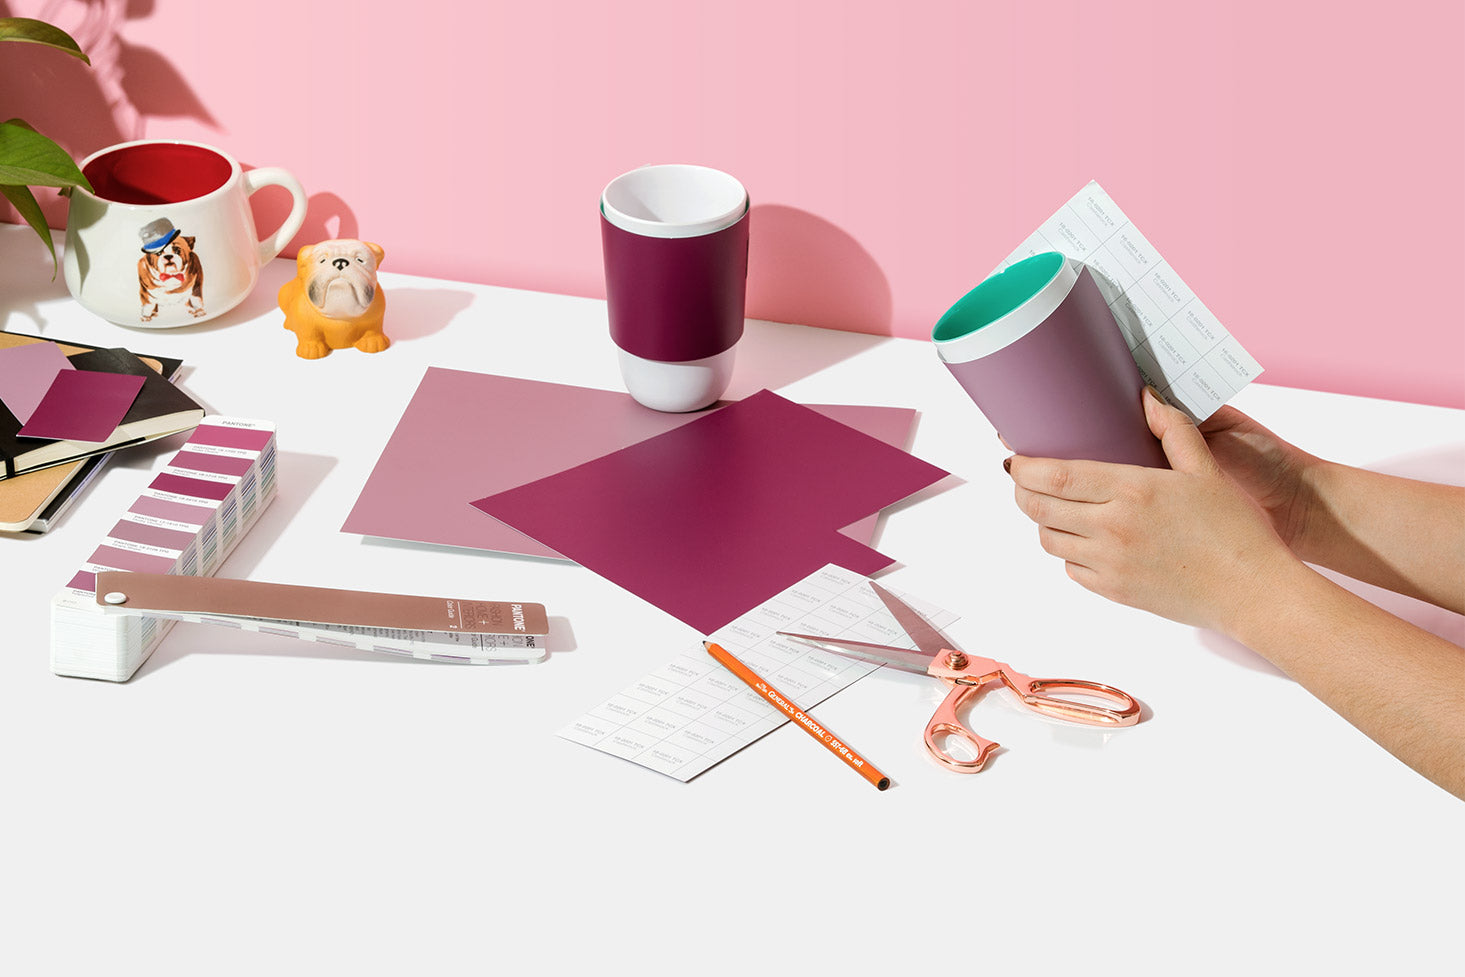 Textile Paper-Green TPG Sheets being wrapped around a cup with scissors on table